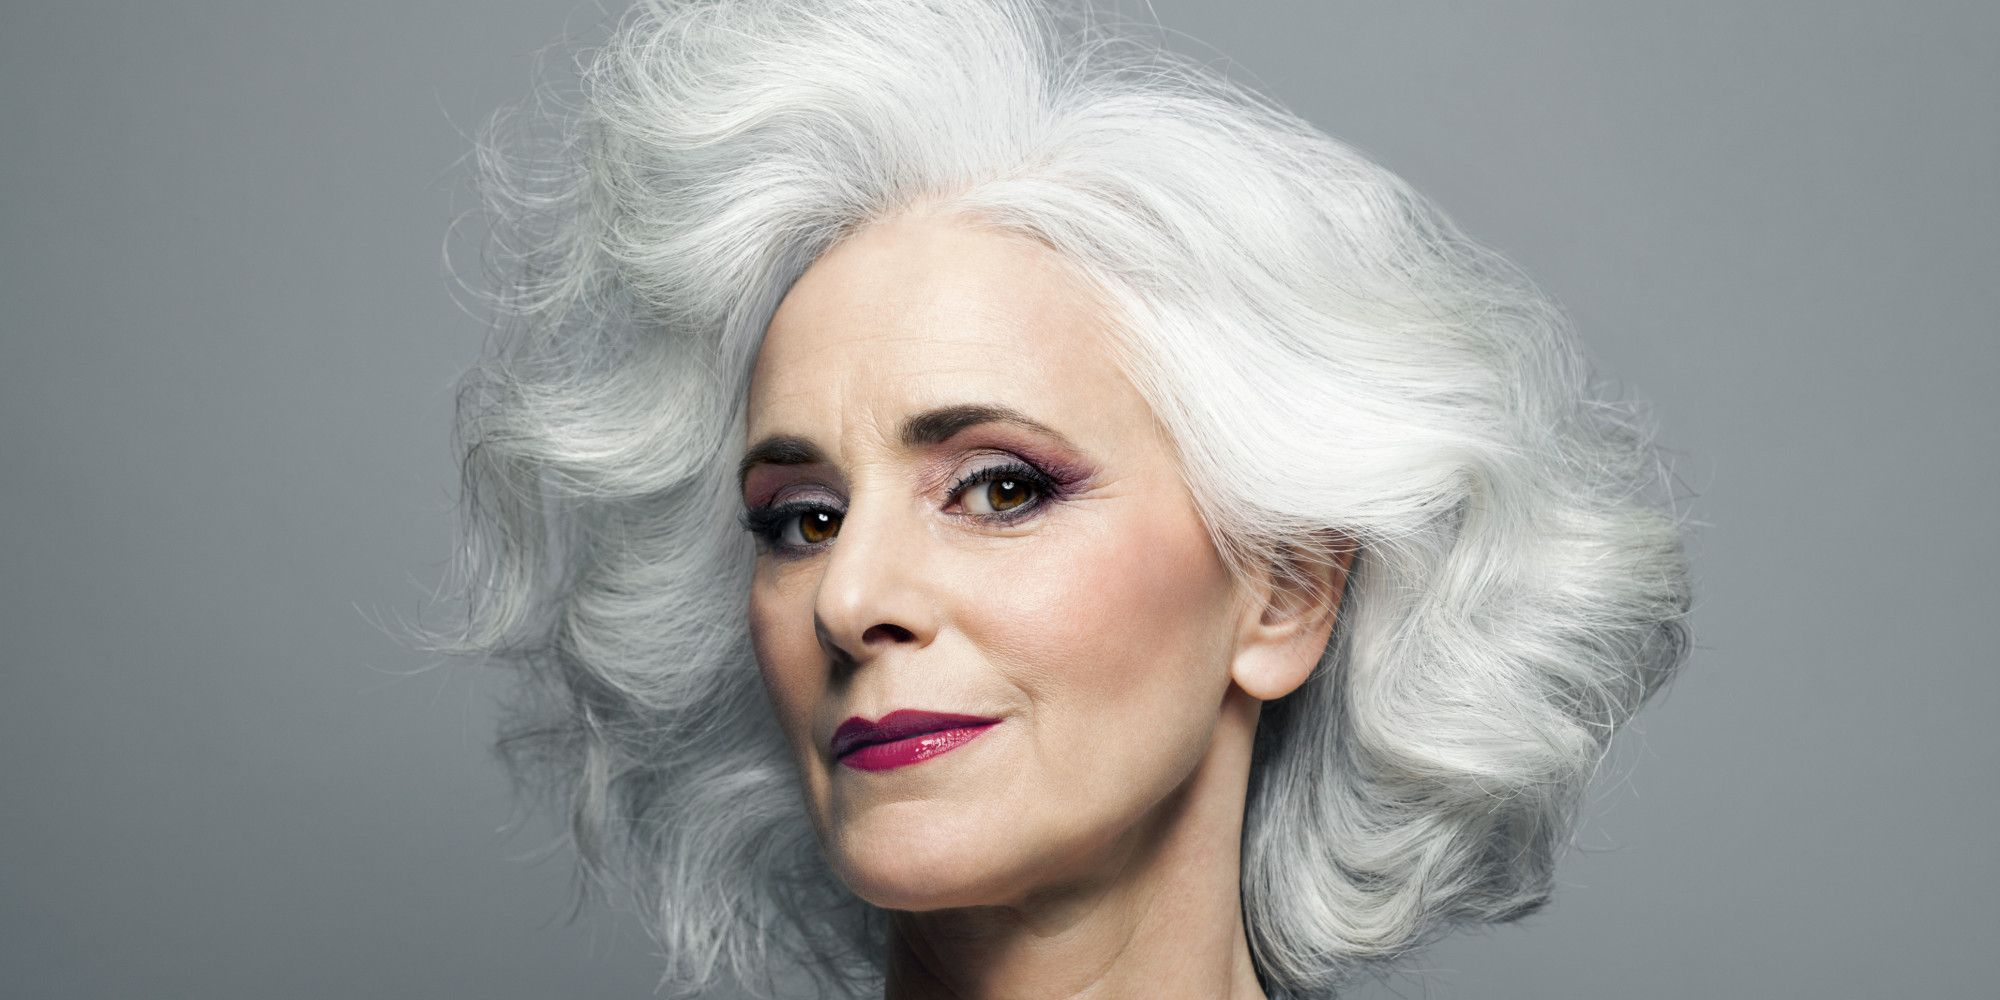 10 Makeup Mistakes That Make You Look Older Makeup tips